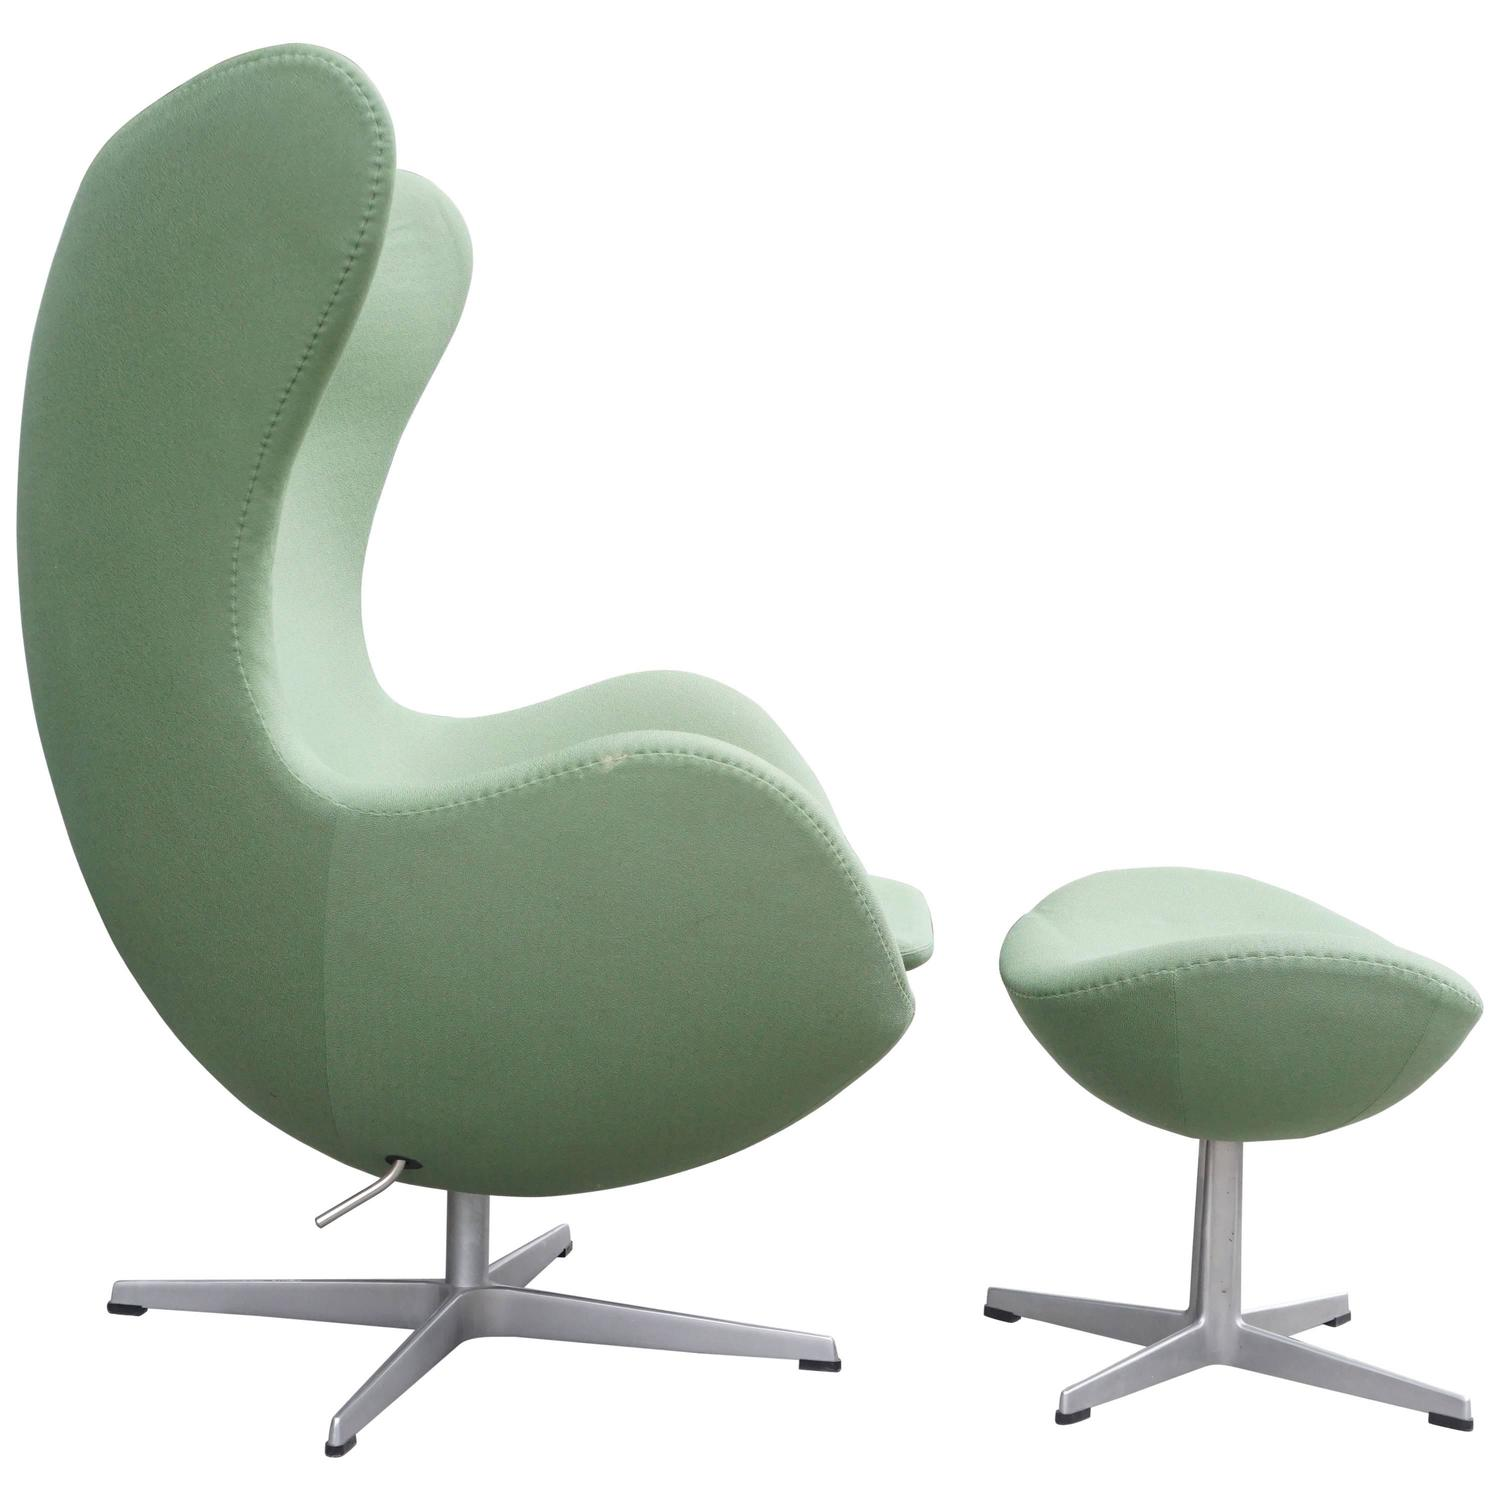 Arne Jacobsen Egg Chair Arne Jacobsen Quotegg Quot Chair With Ottoman At 1stdibs